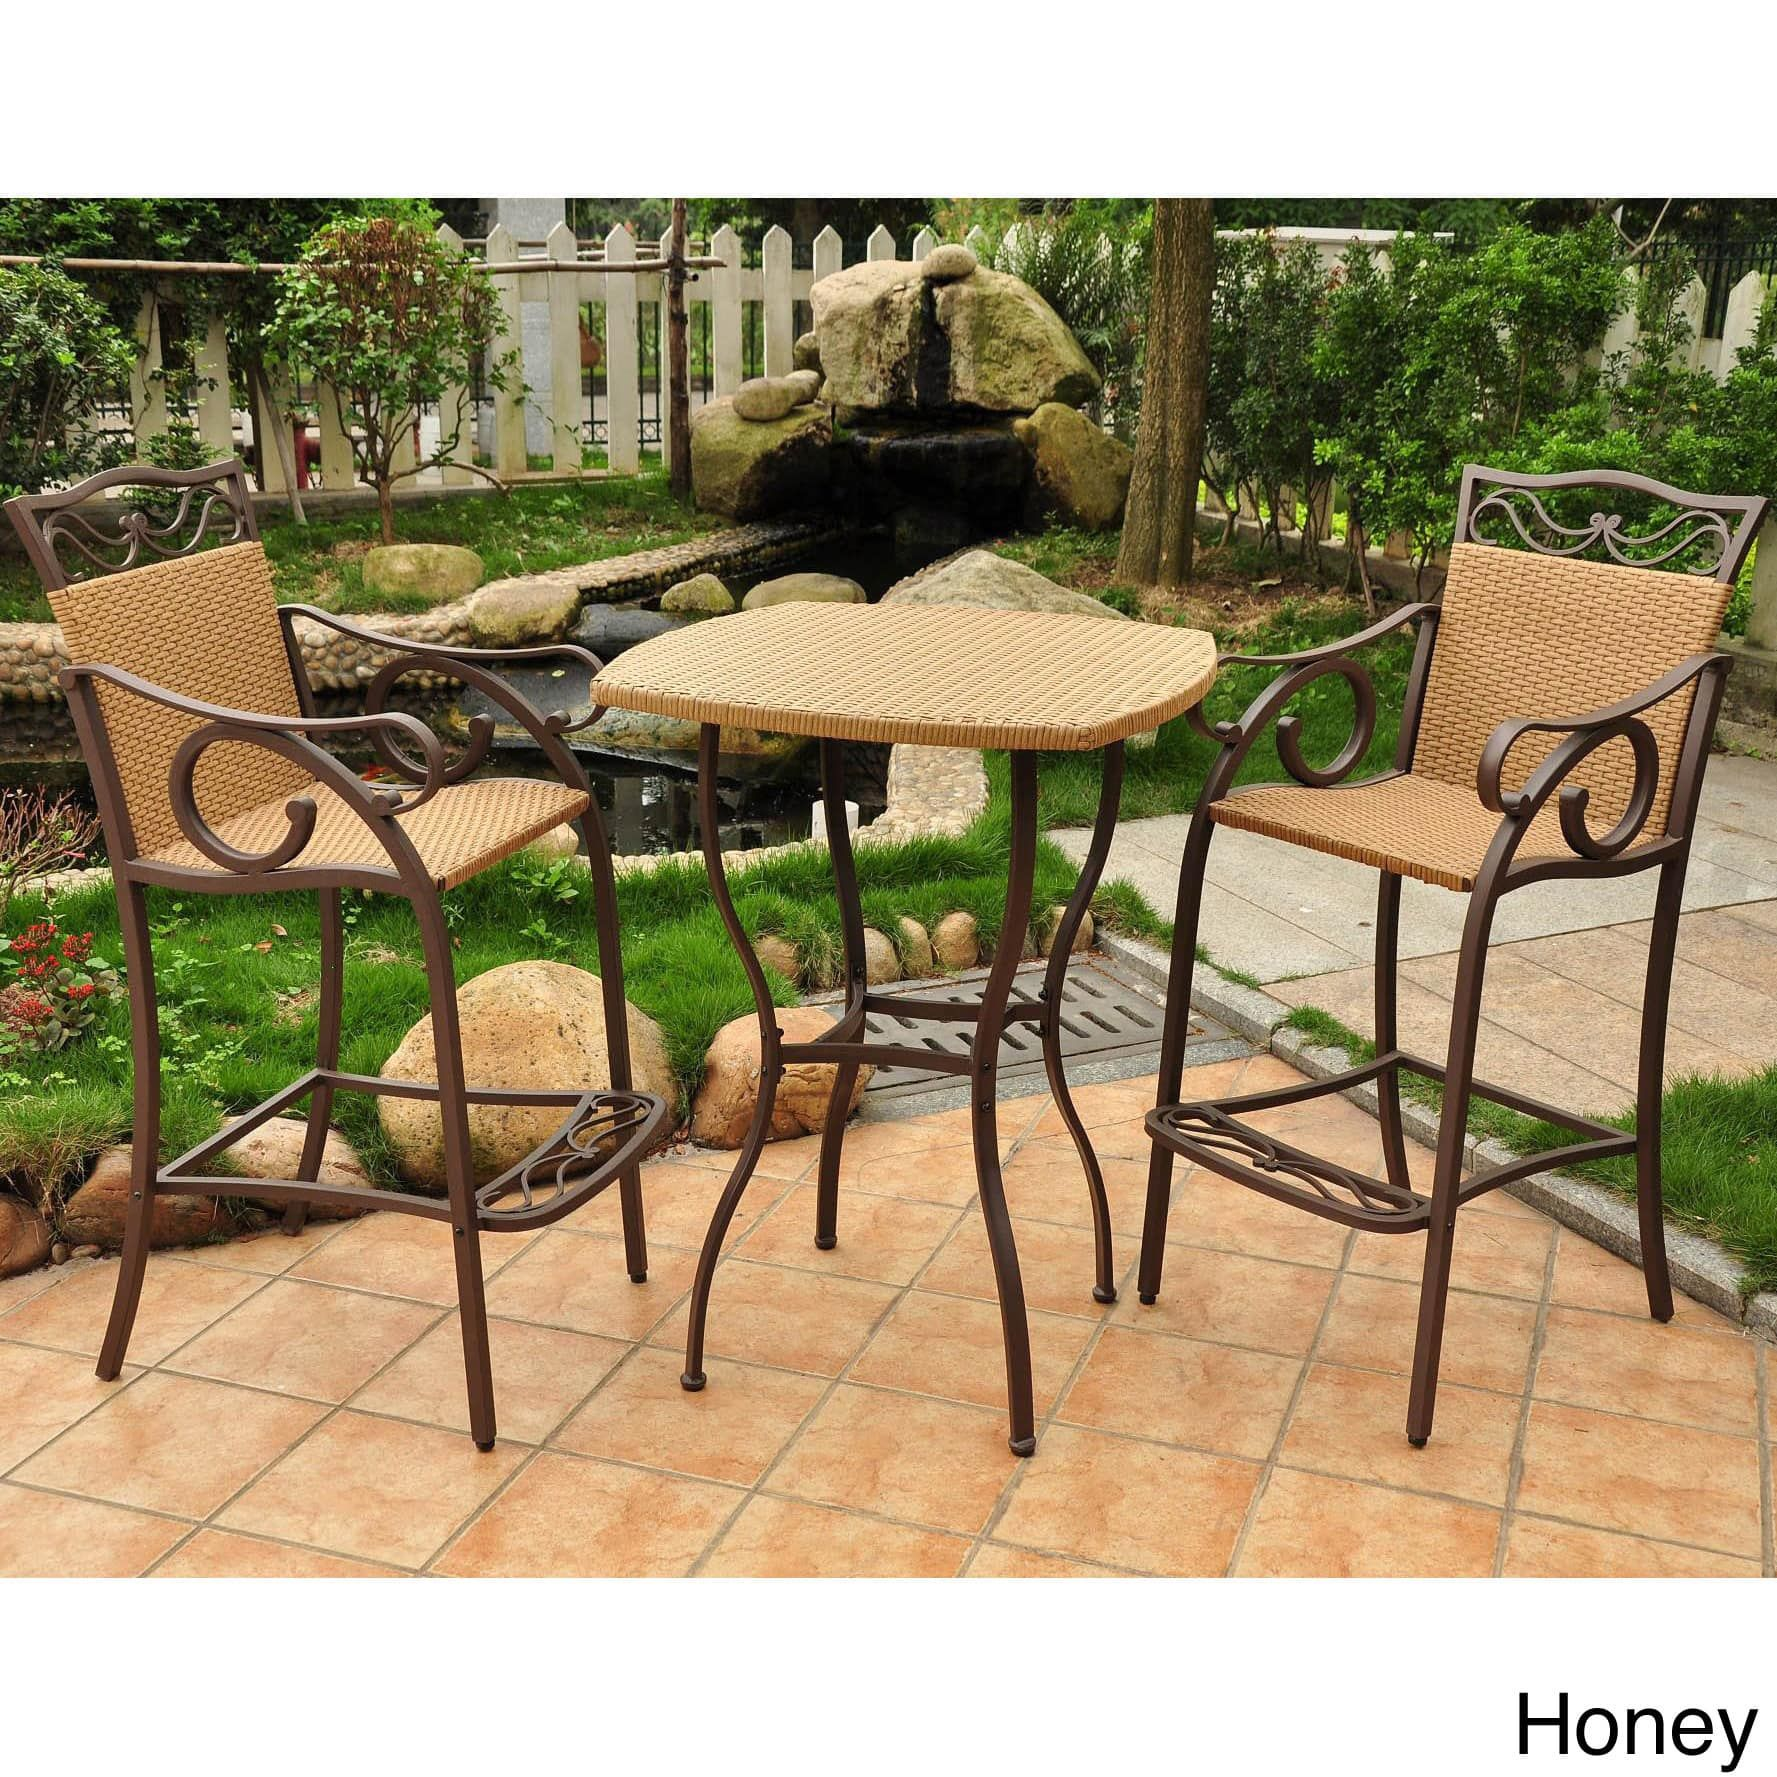 bistro orearance or clearance photo on patio salepatio size outdoor three wickerpatio set piece sets hole unusual sale umbrella design with full of